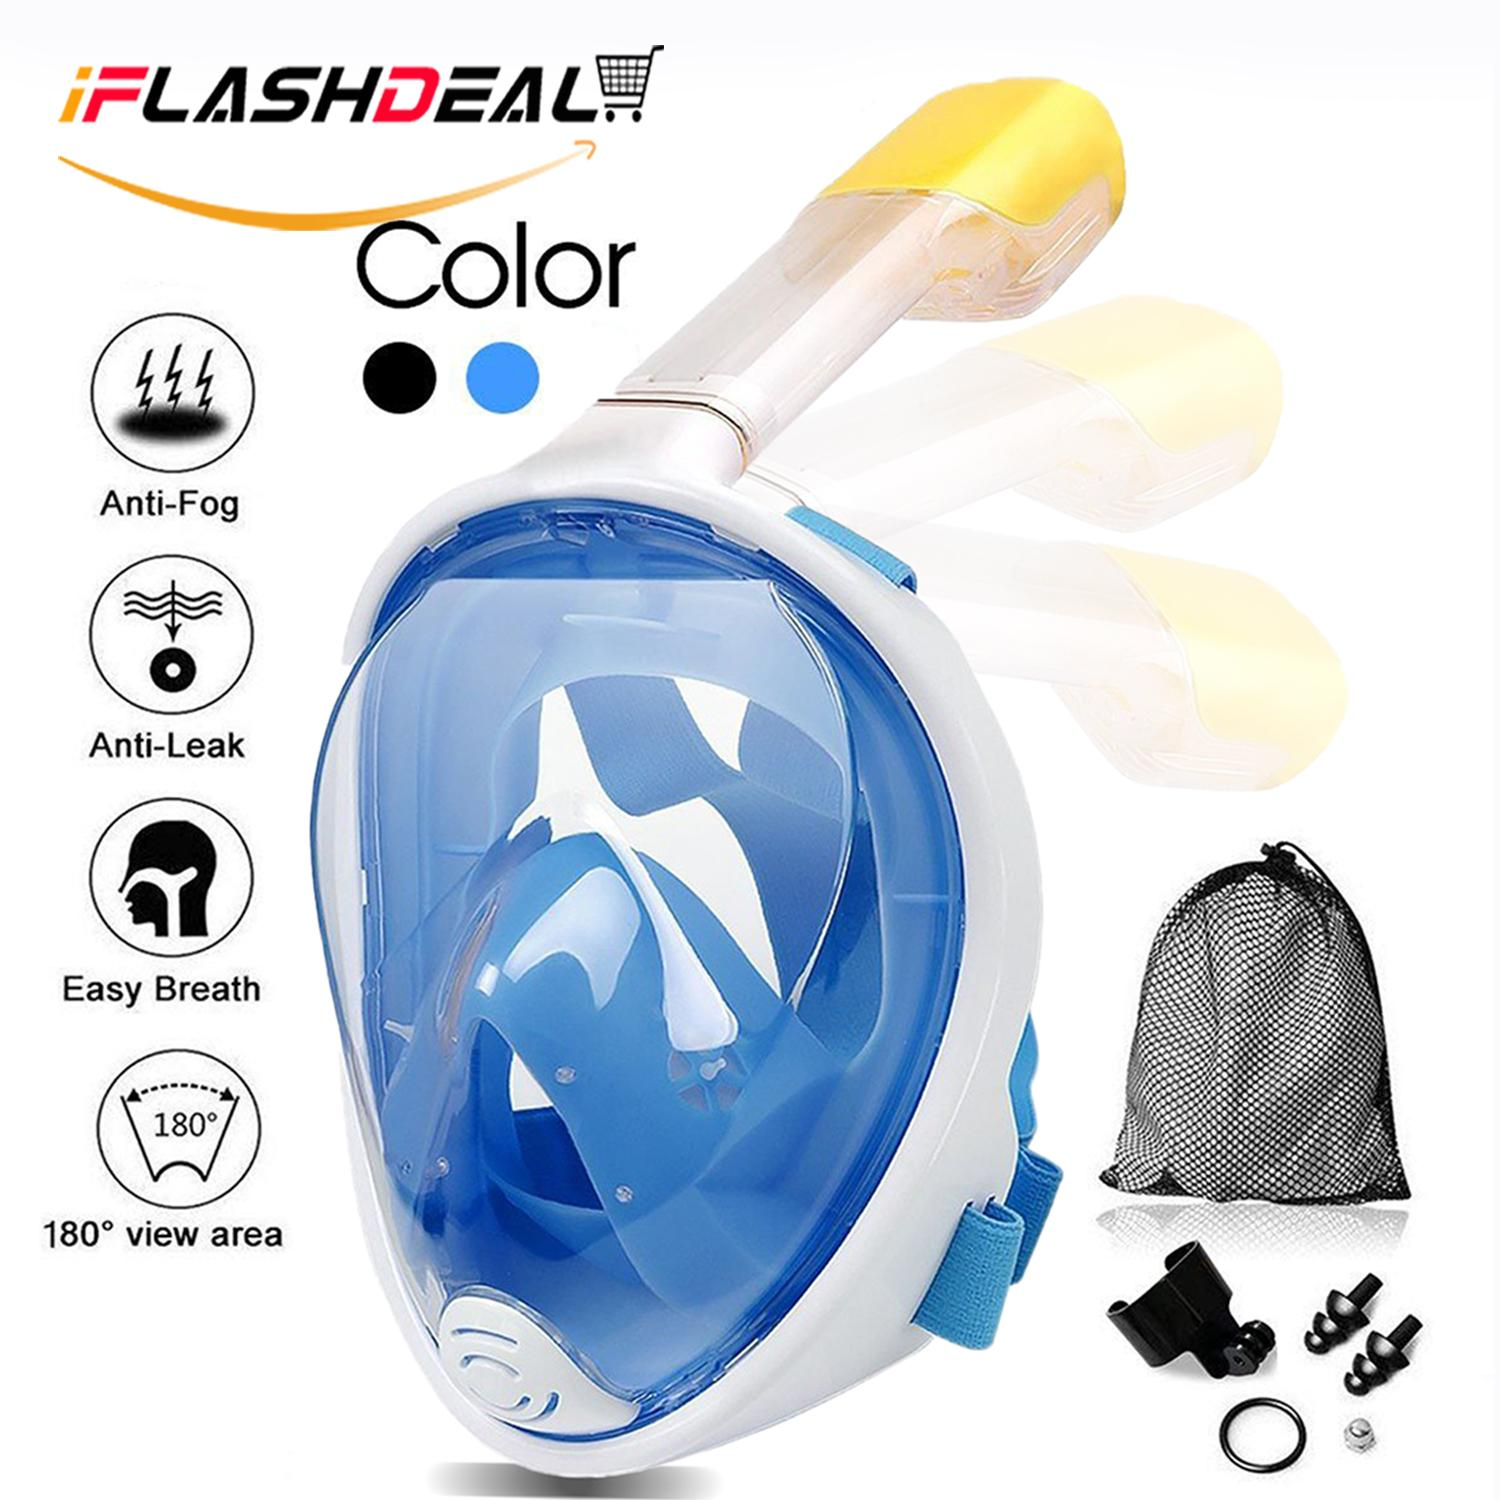 Diving Snorkeling Terlengkap Mesin Jahit Tangan Portable Iflashdeal Masker Outdoor Olahraga Air Menyelam Snorkel Mask Full Face And